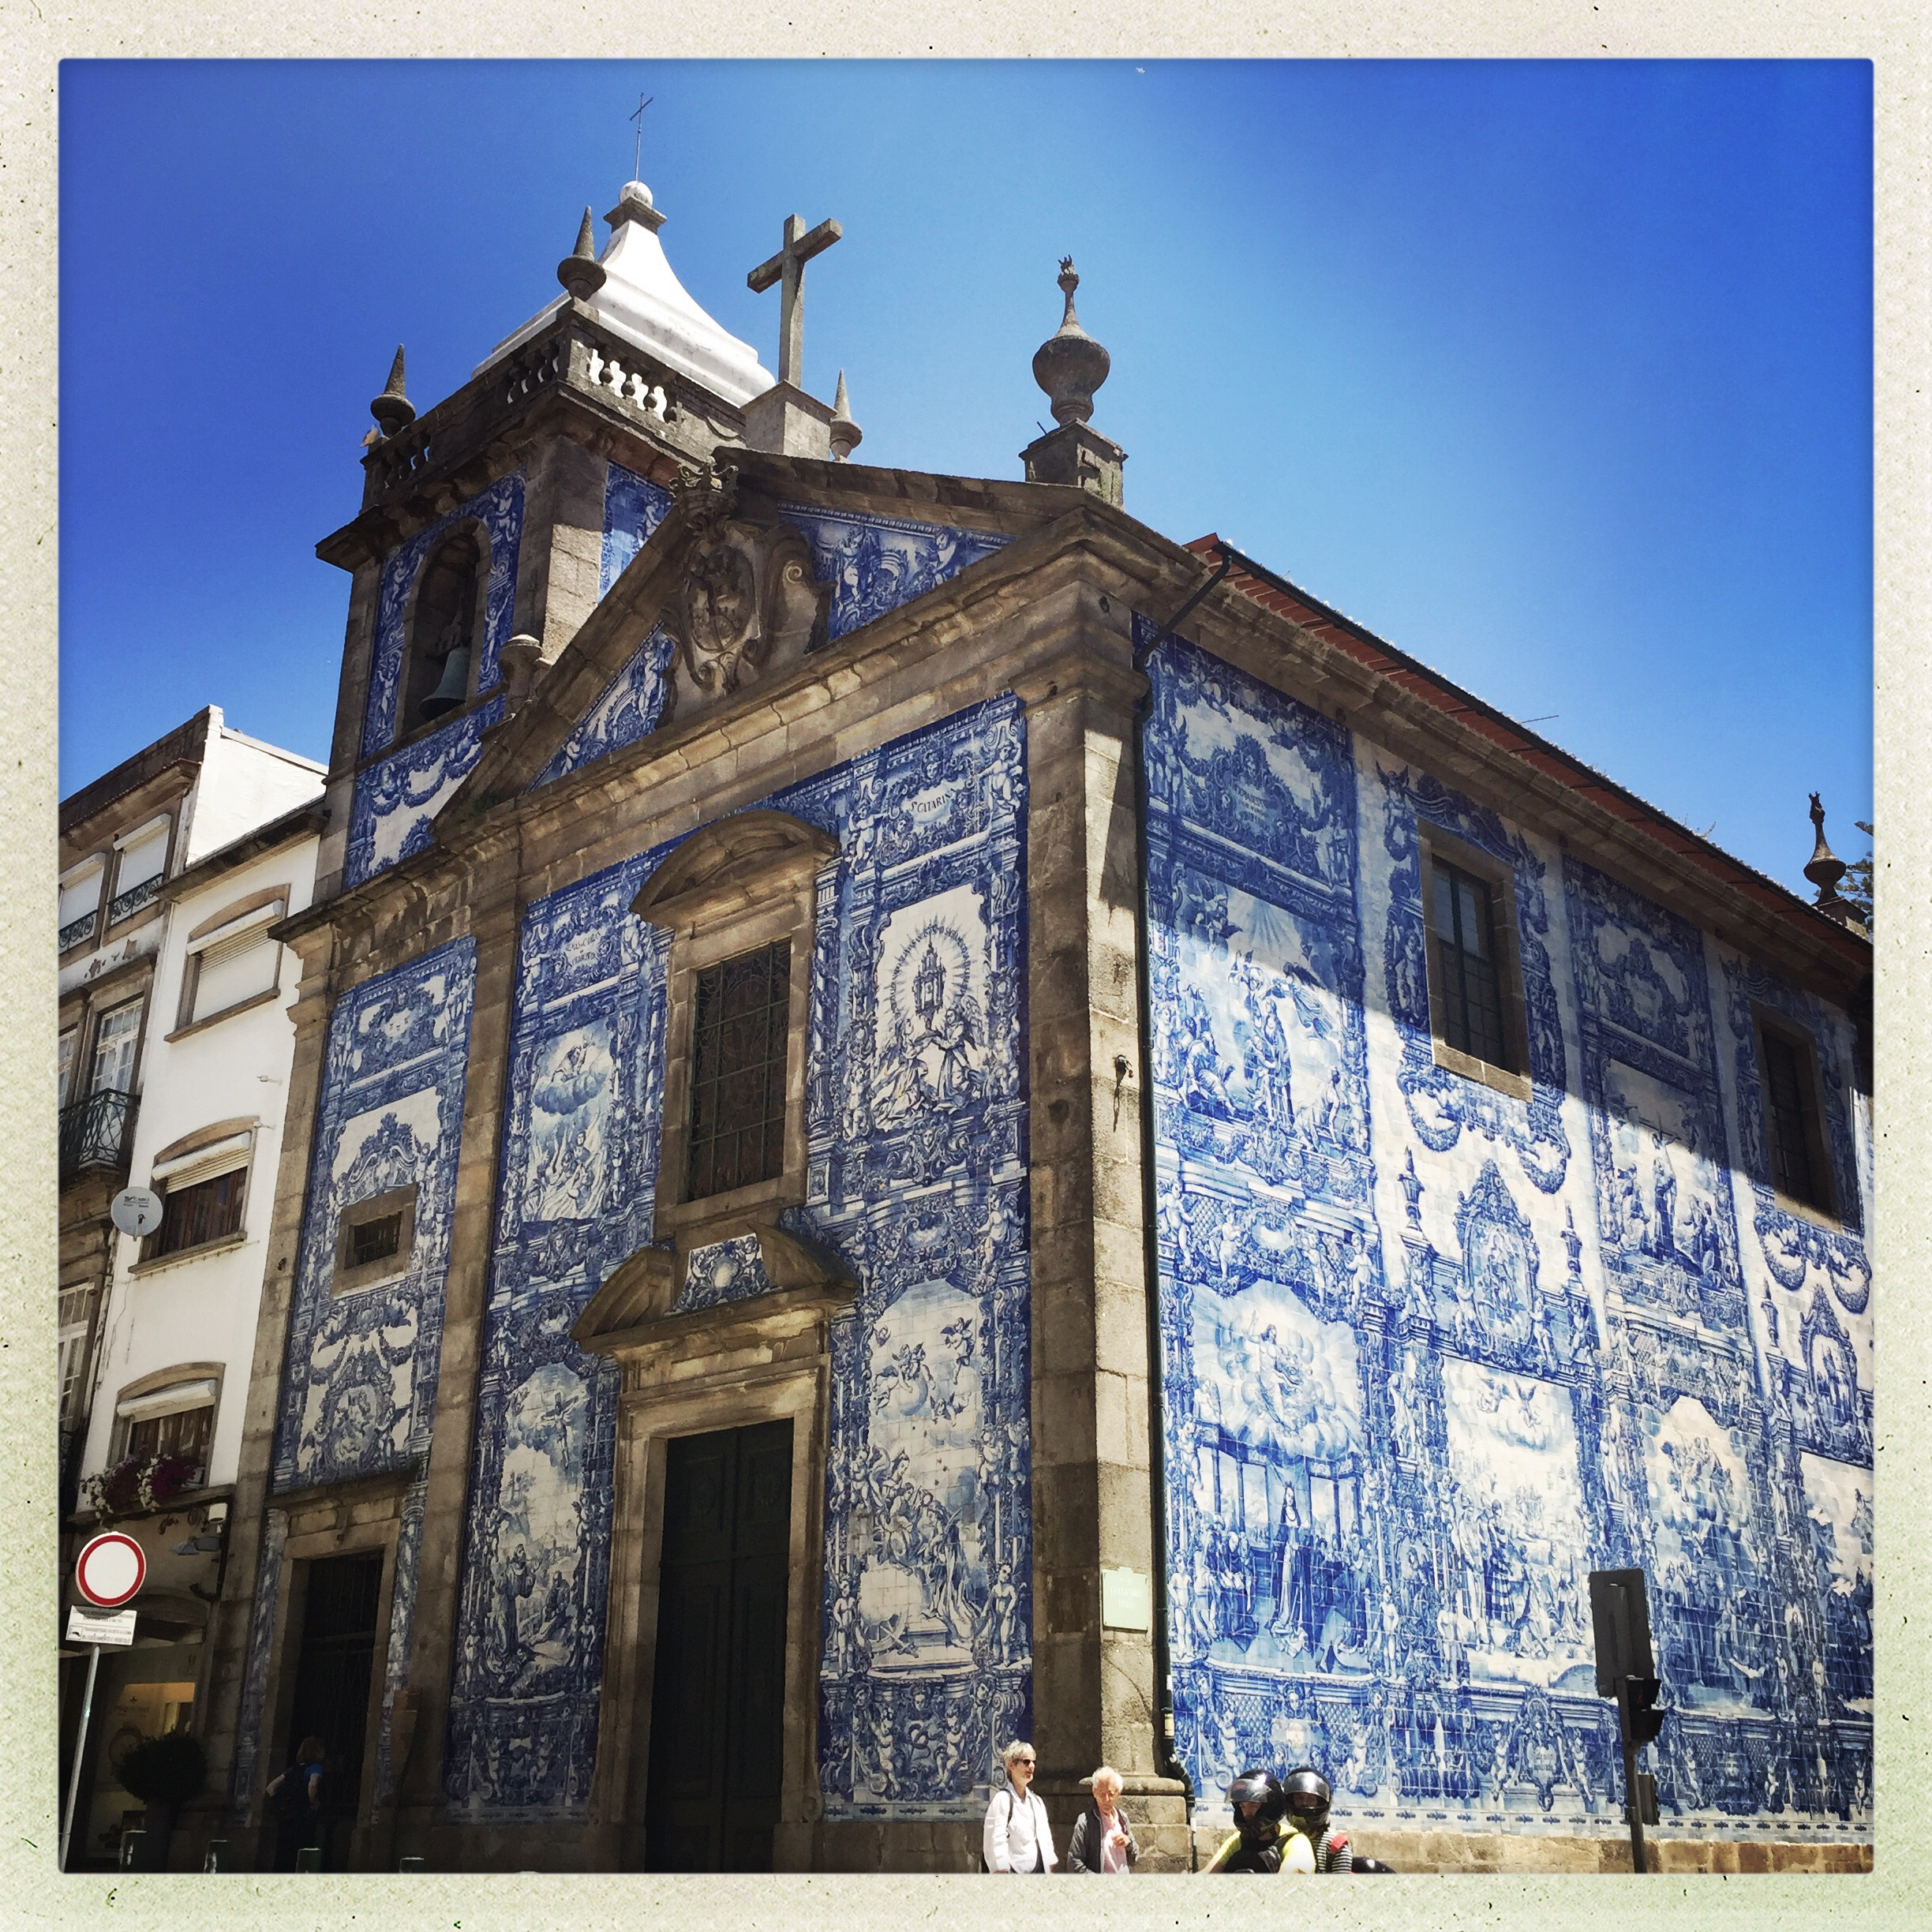 The blue tiling facade which is everywhere and just gorgeous